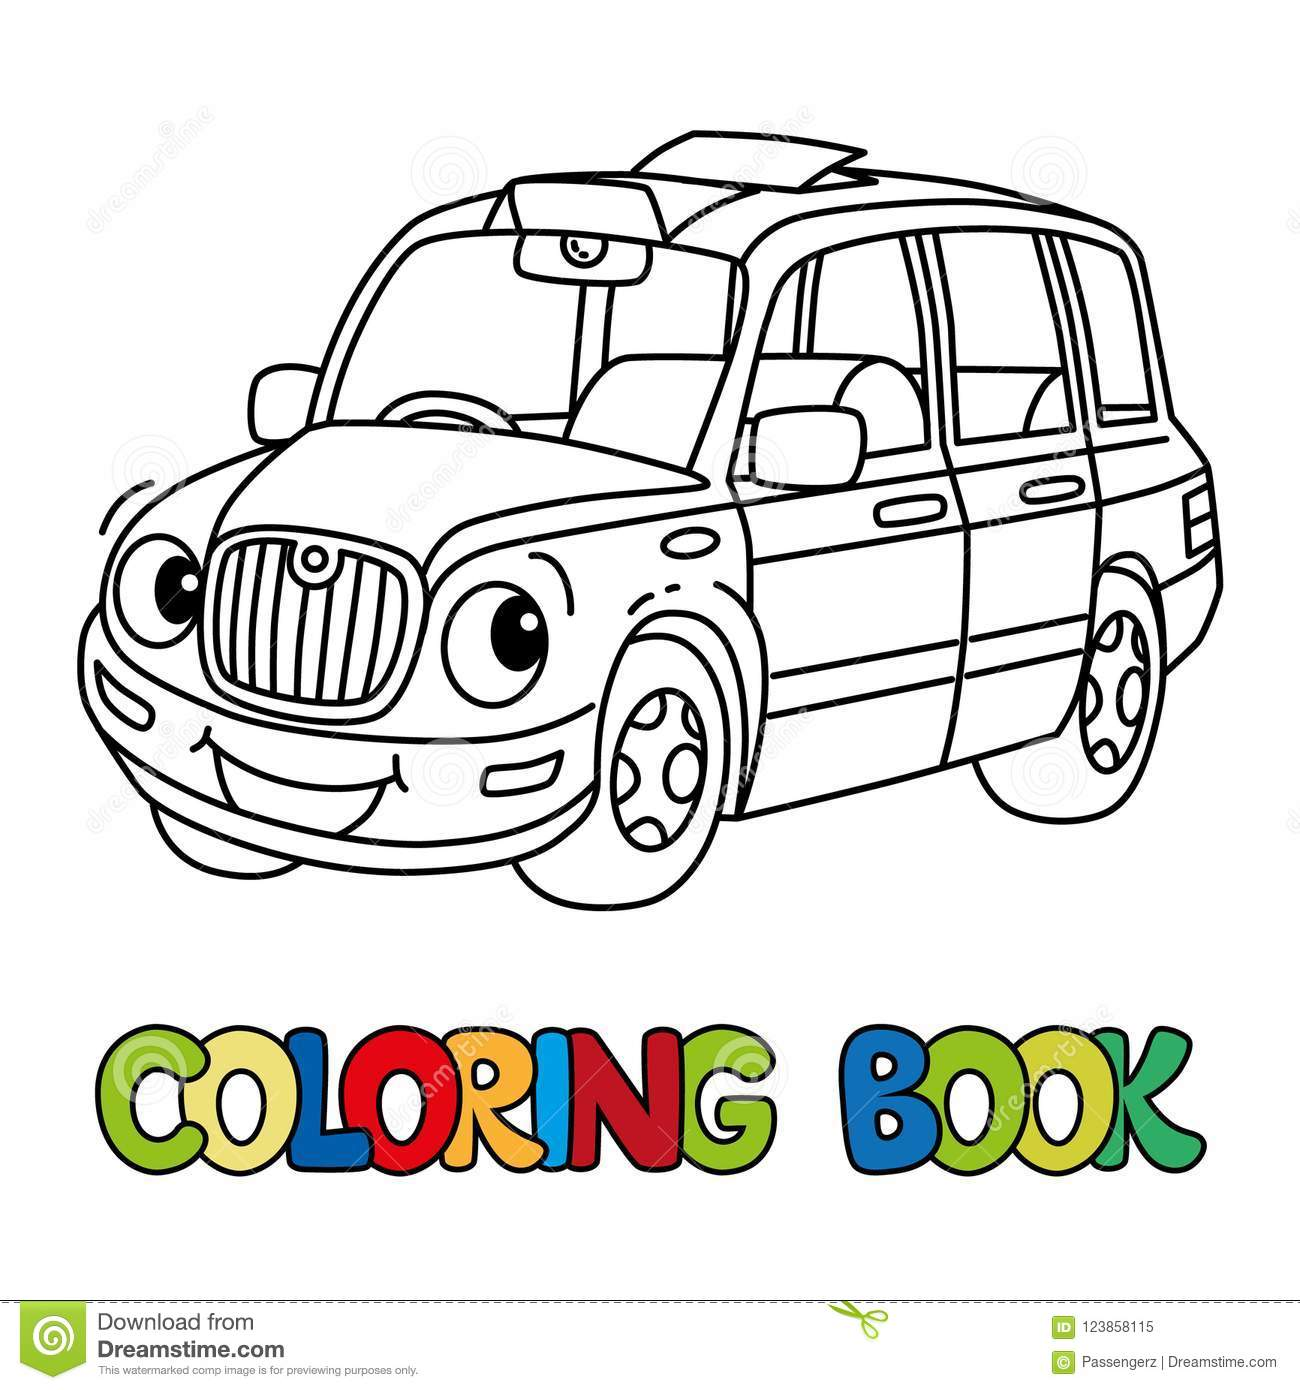 Funny Small Taxi Car Or London Cab. Coloring Book Stock Vector ...